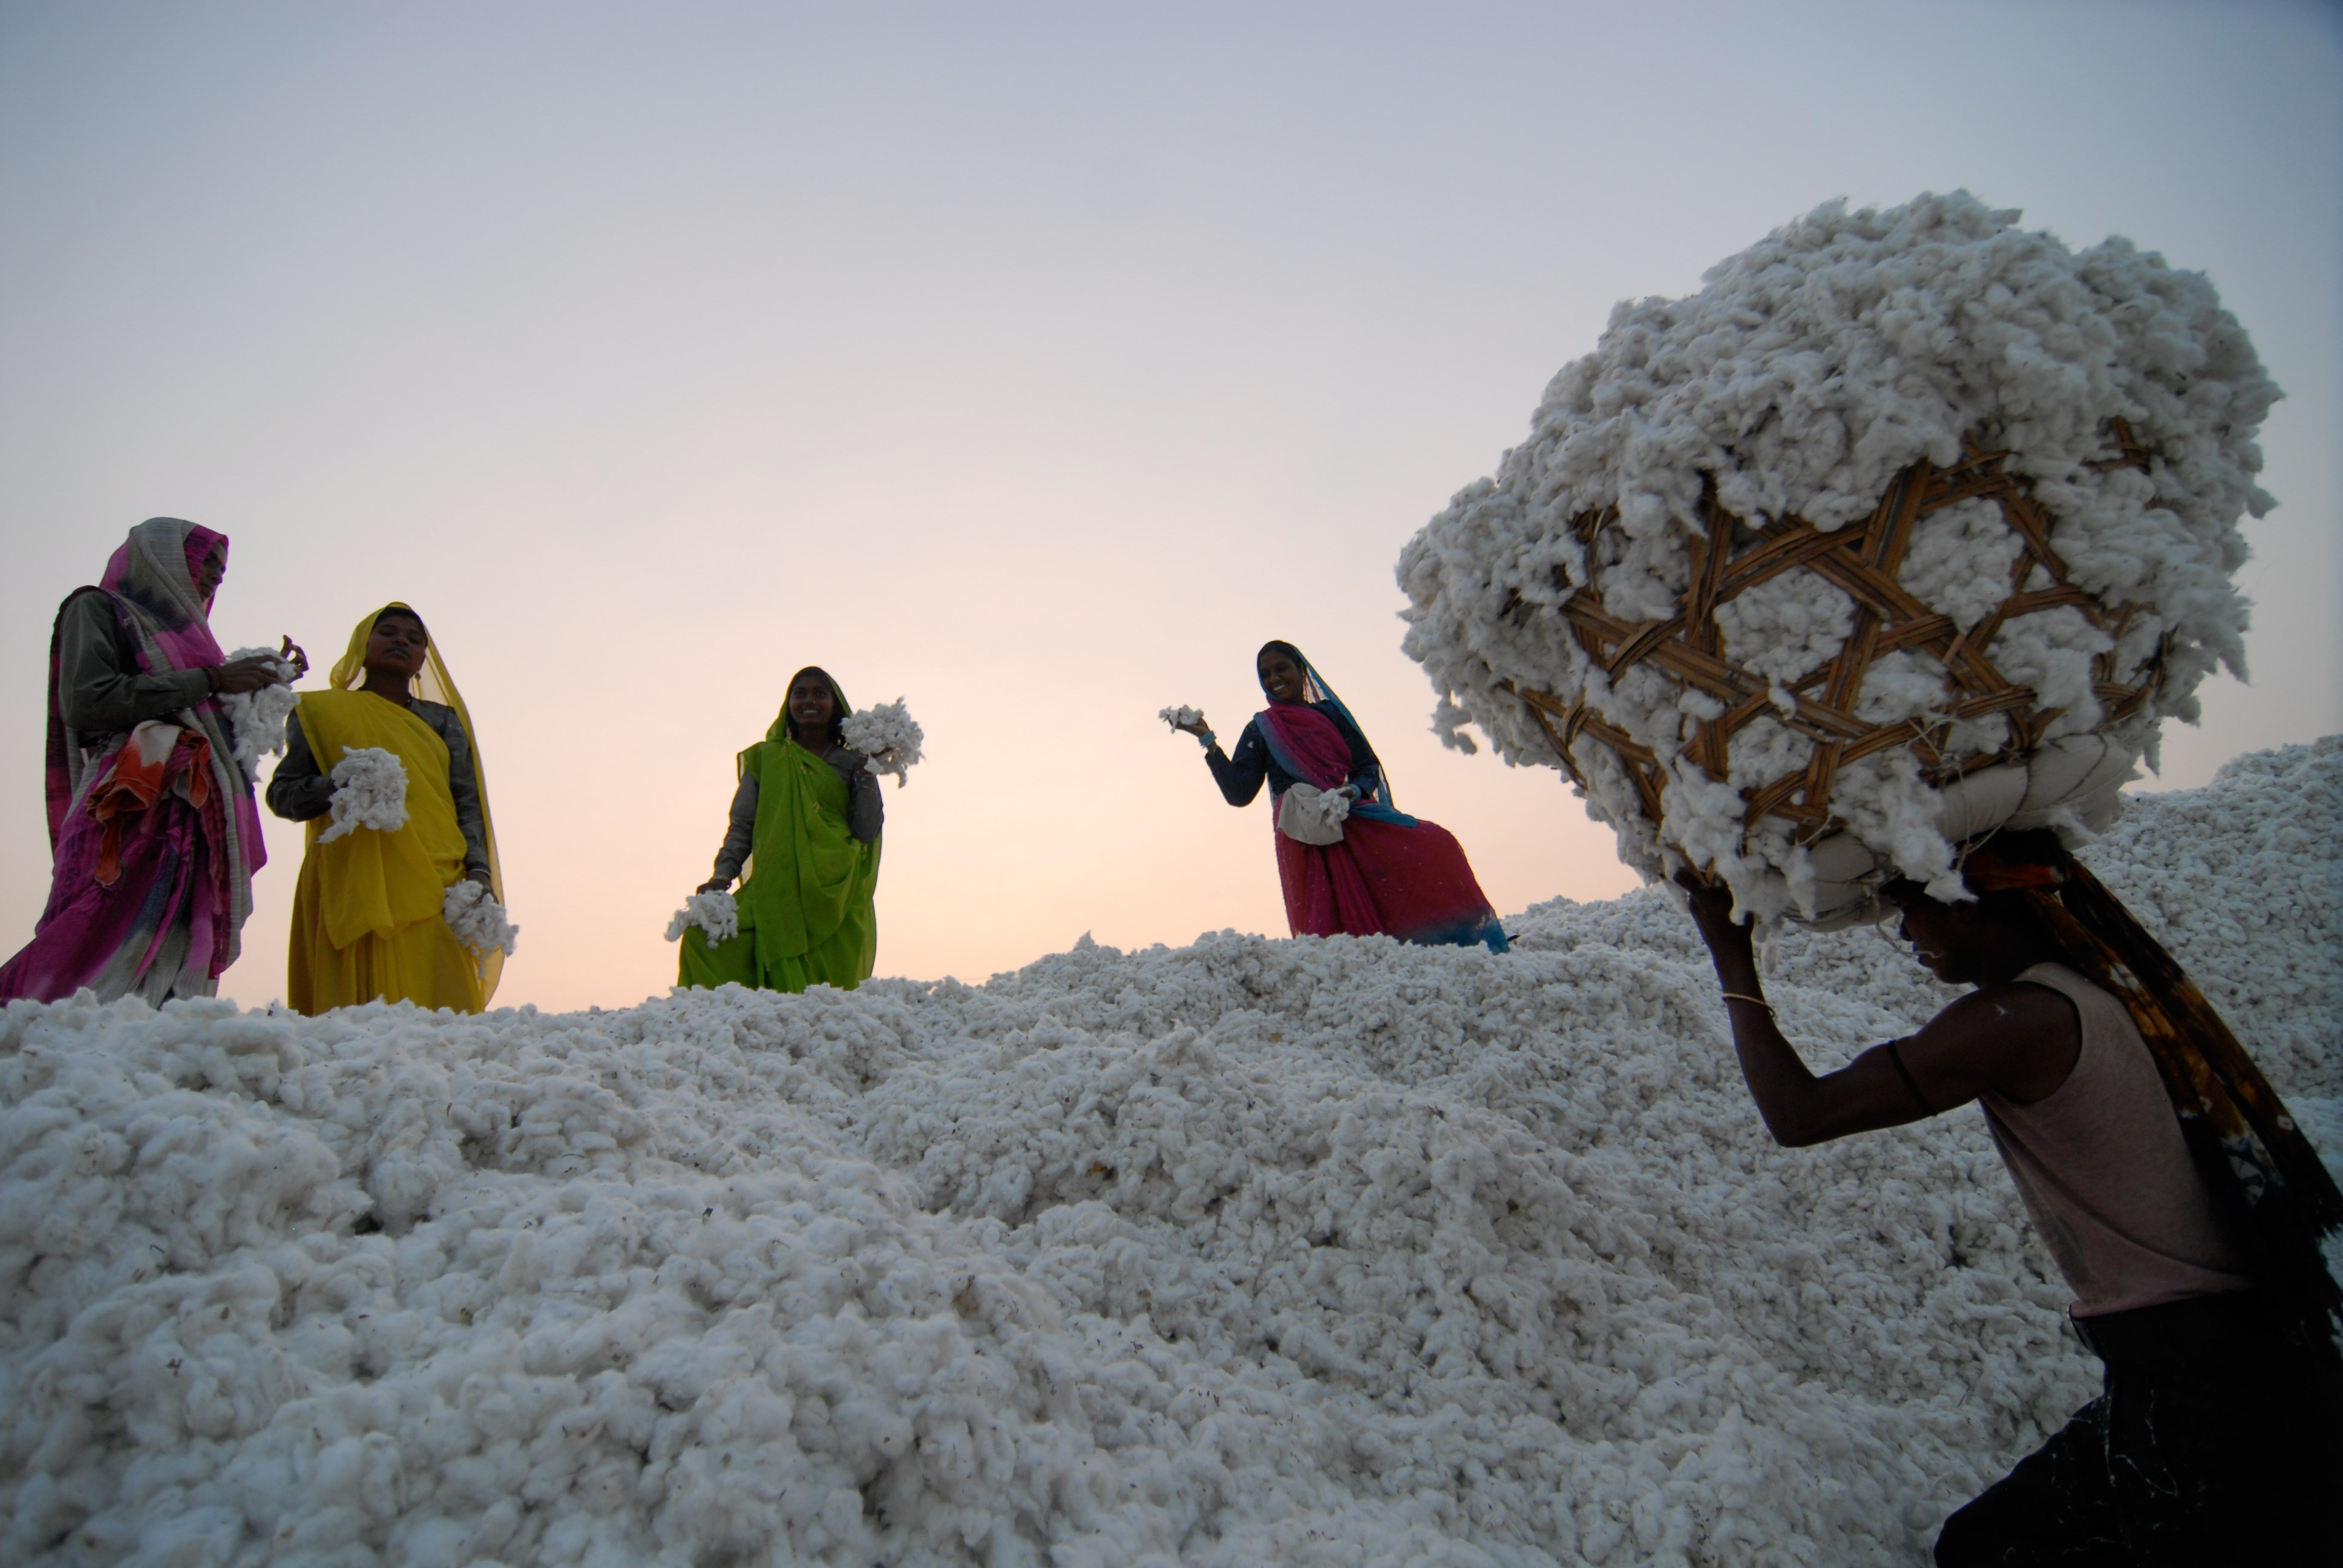 Thirteen Of World's Biggest Brands Commit To More Sustainable Cotton By 2025